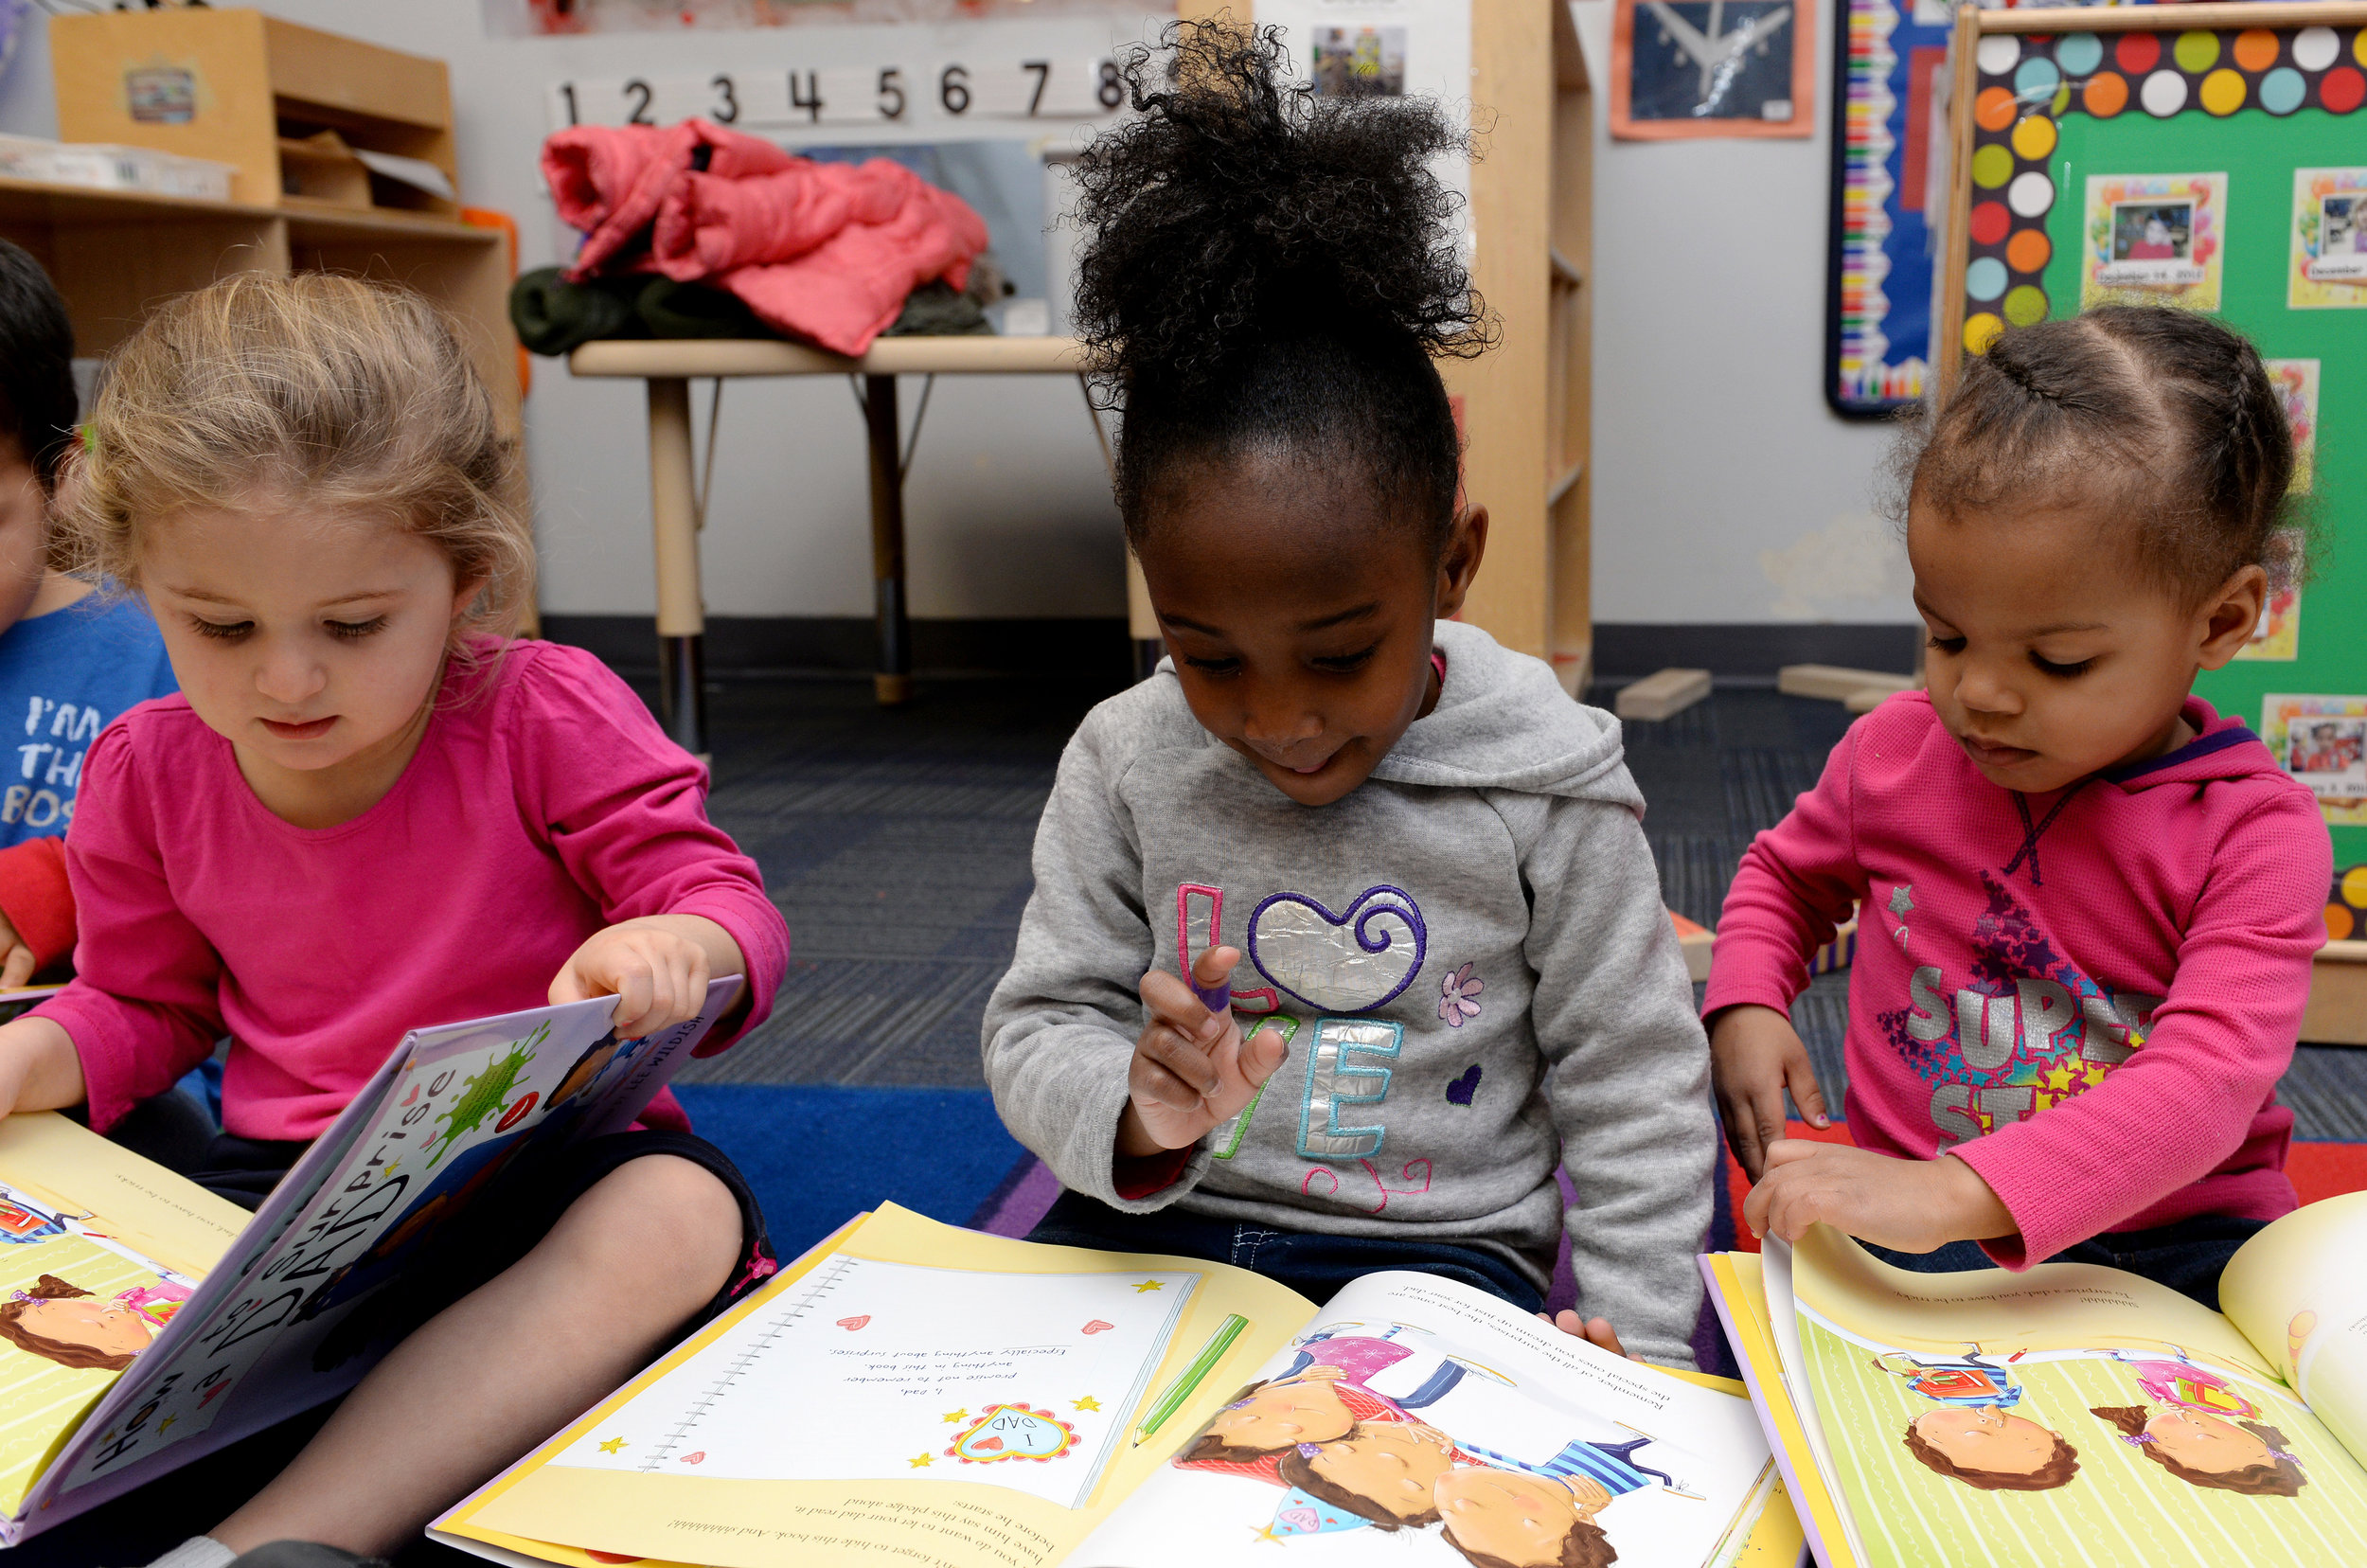 Three preschool students read books at the Child Development Center at Langley Air Force Base, Va., Feb. 16, 2016.  Photographer: Kaylee Dubois